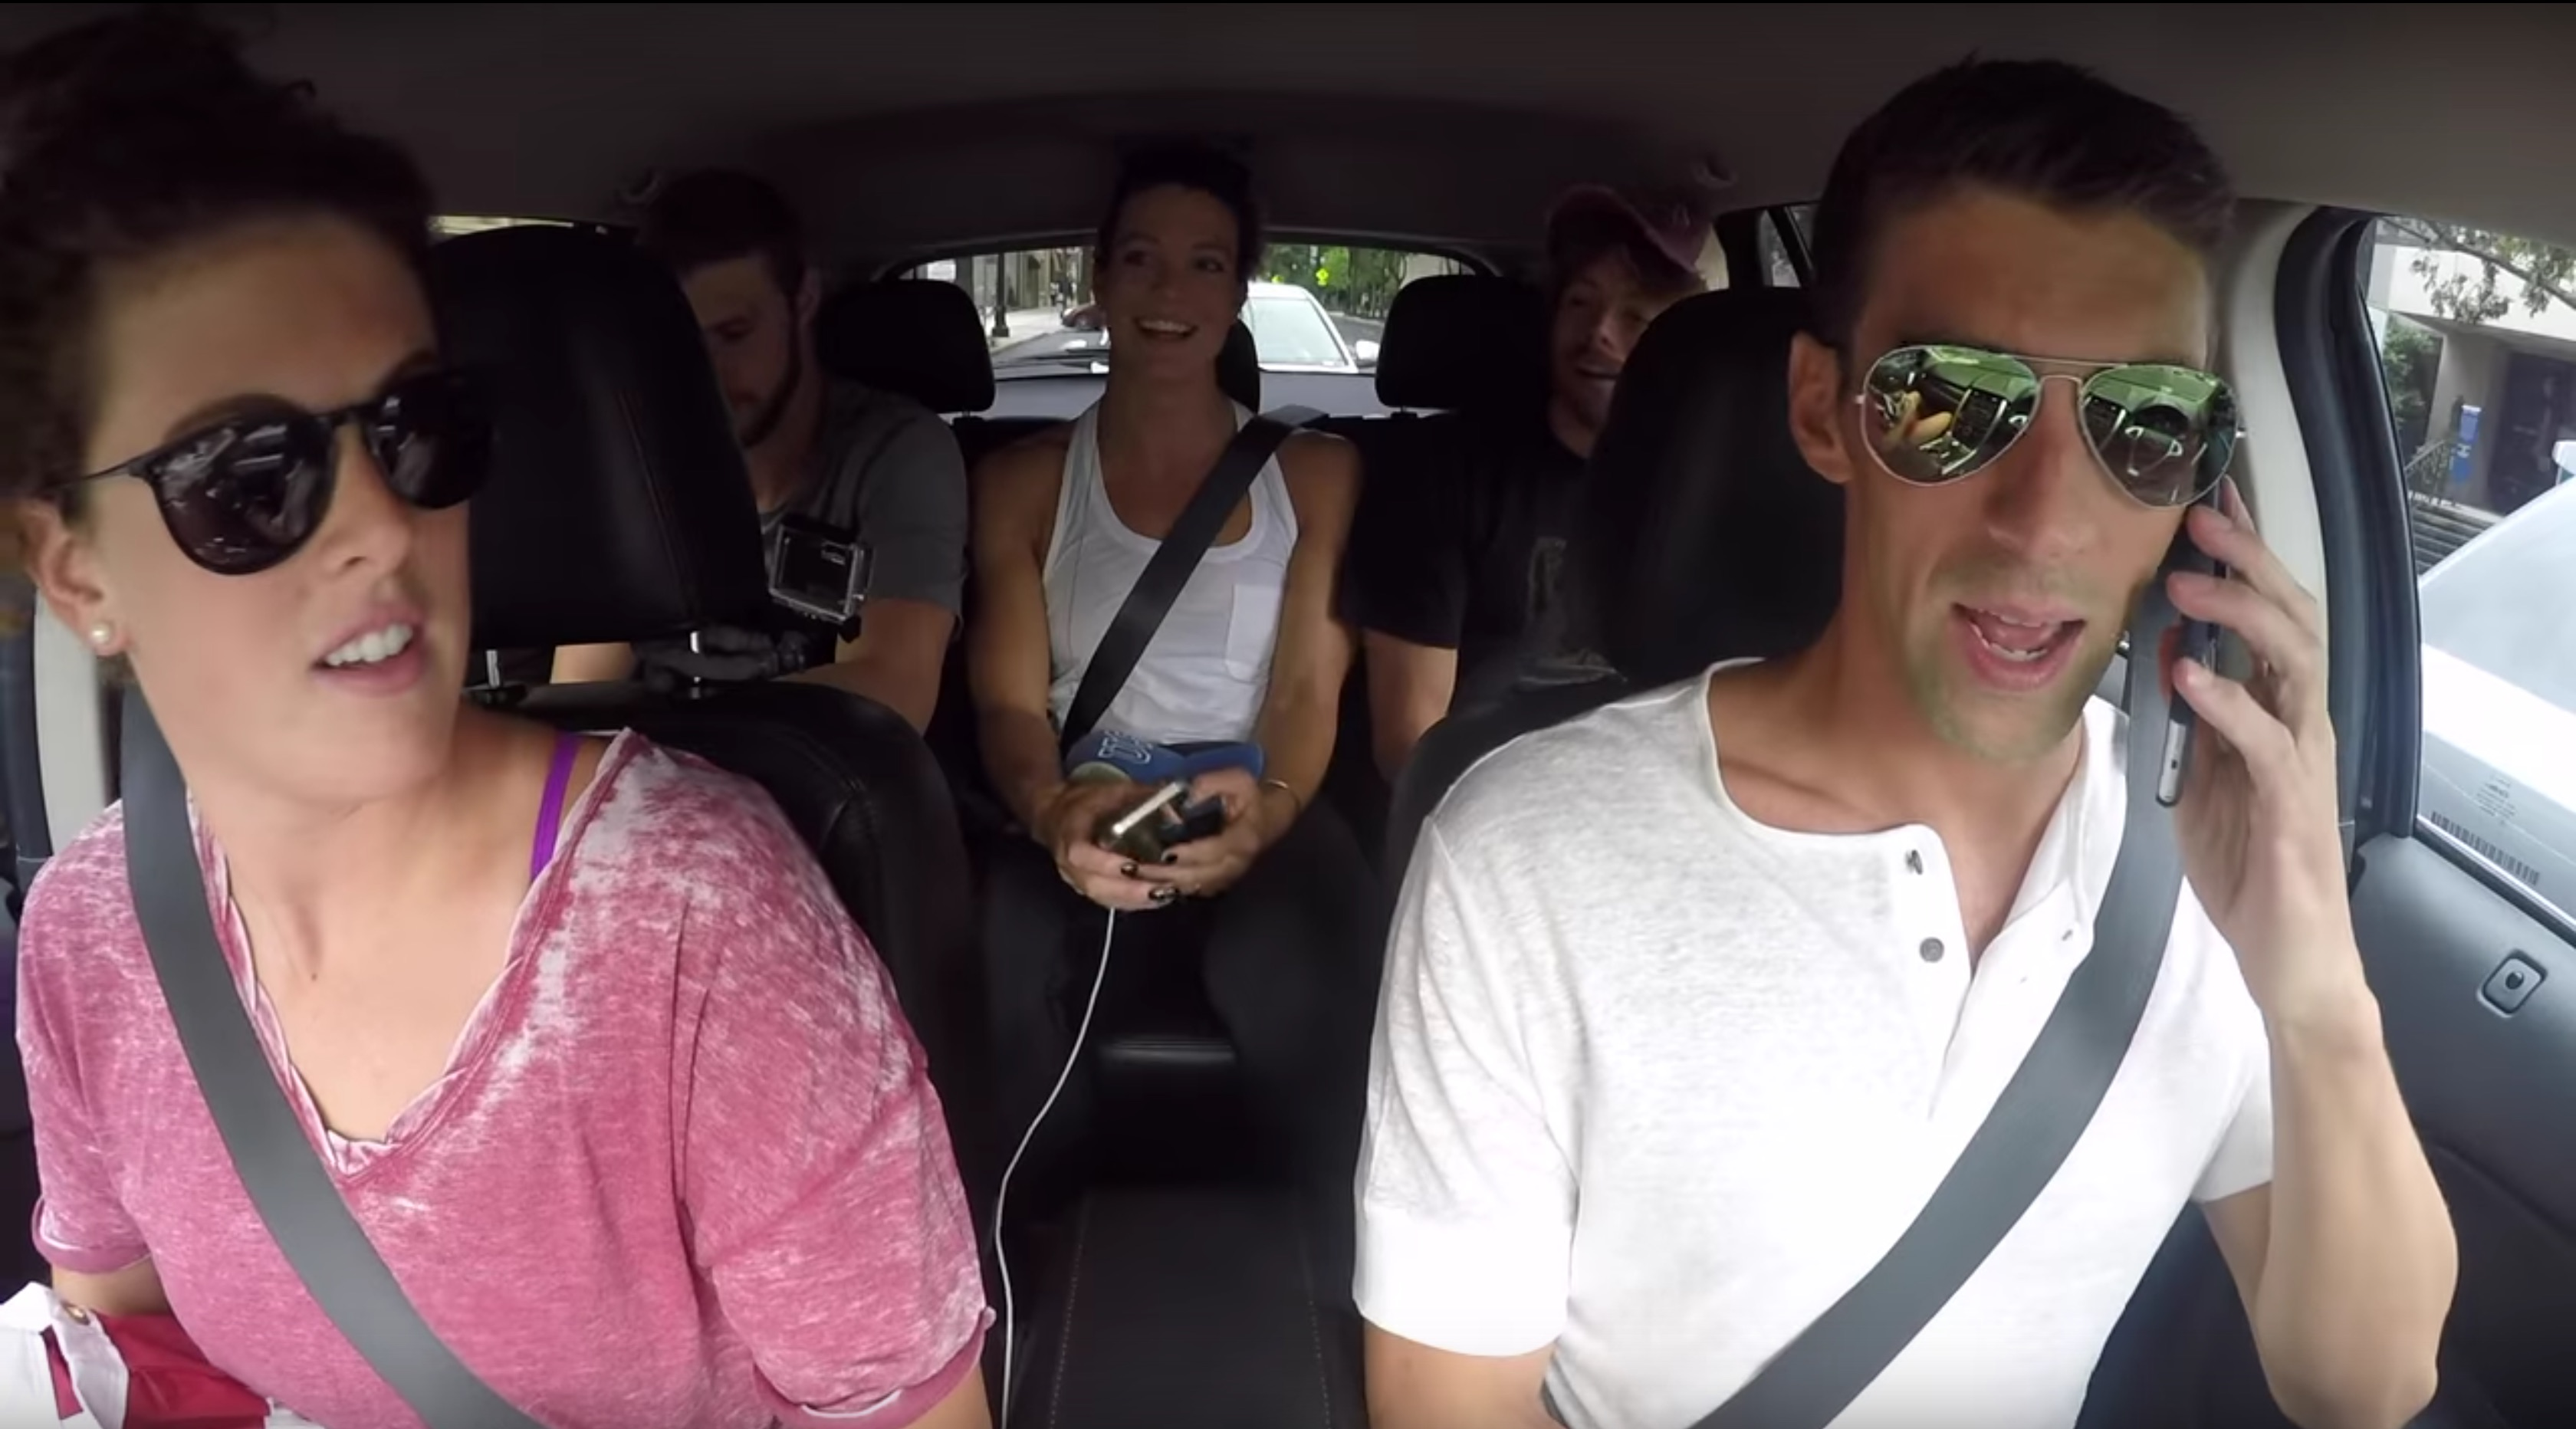 The USA Olympic Swim team just lip synced every song you're embarrassed to have on your iPod